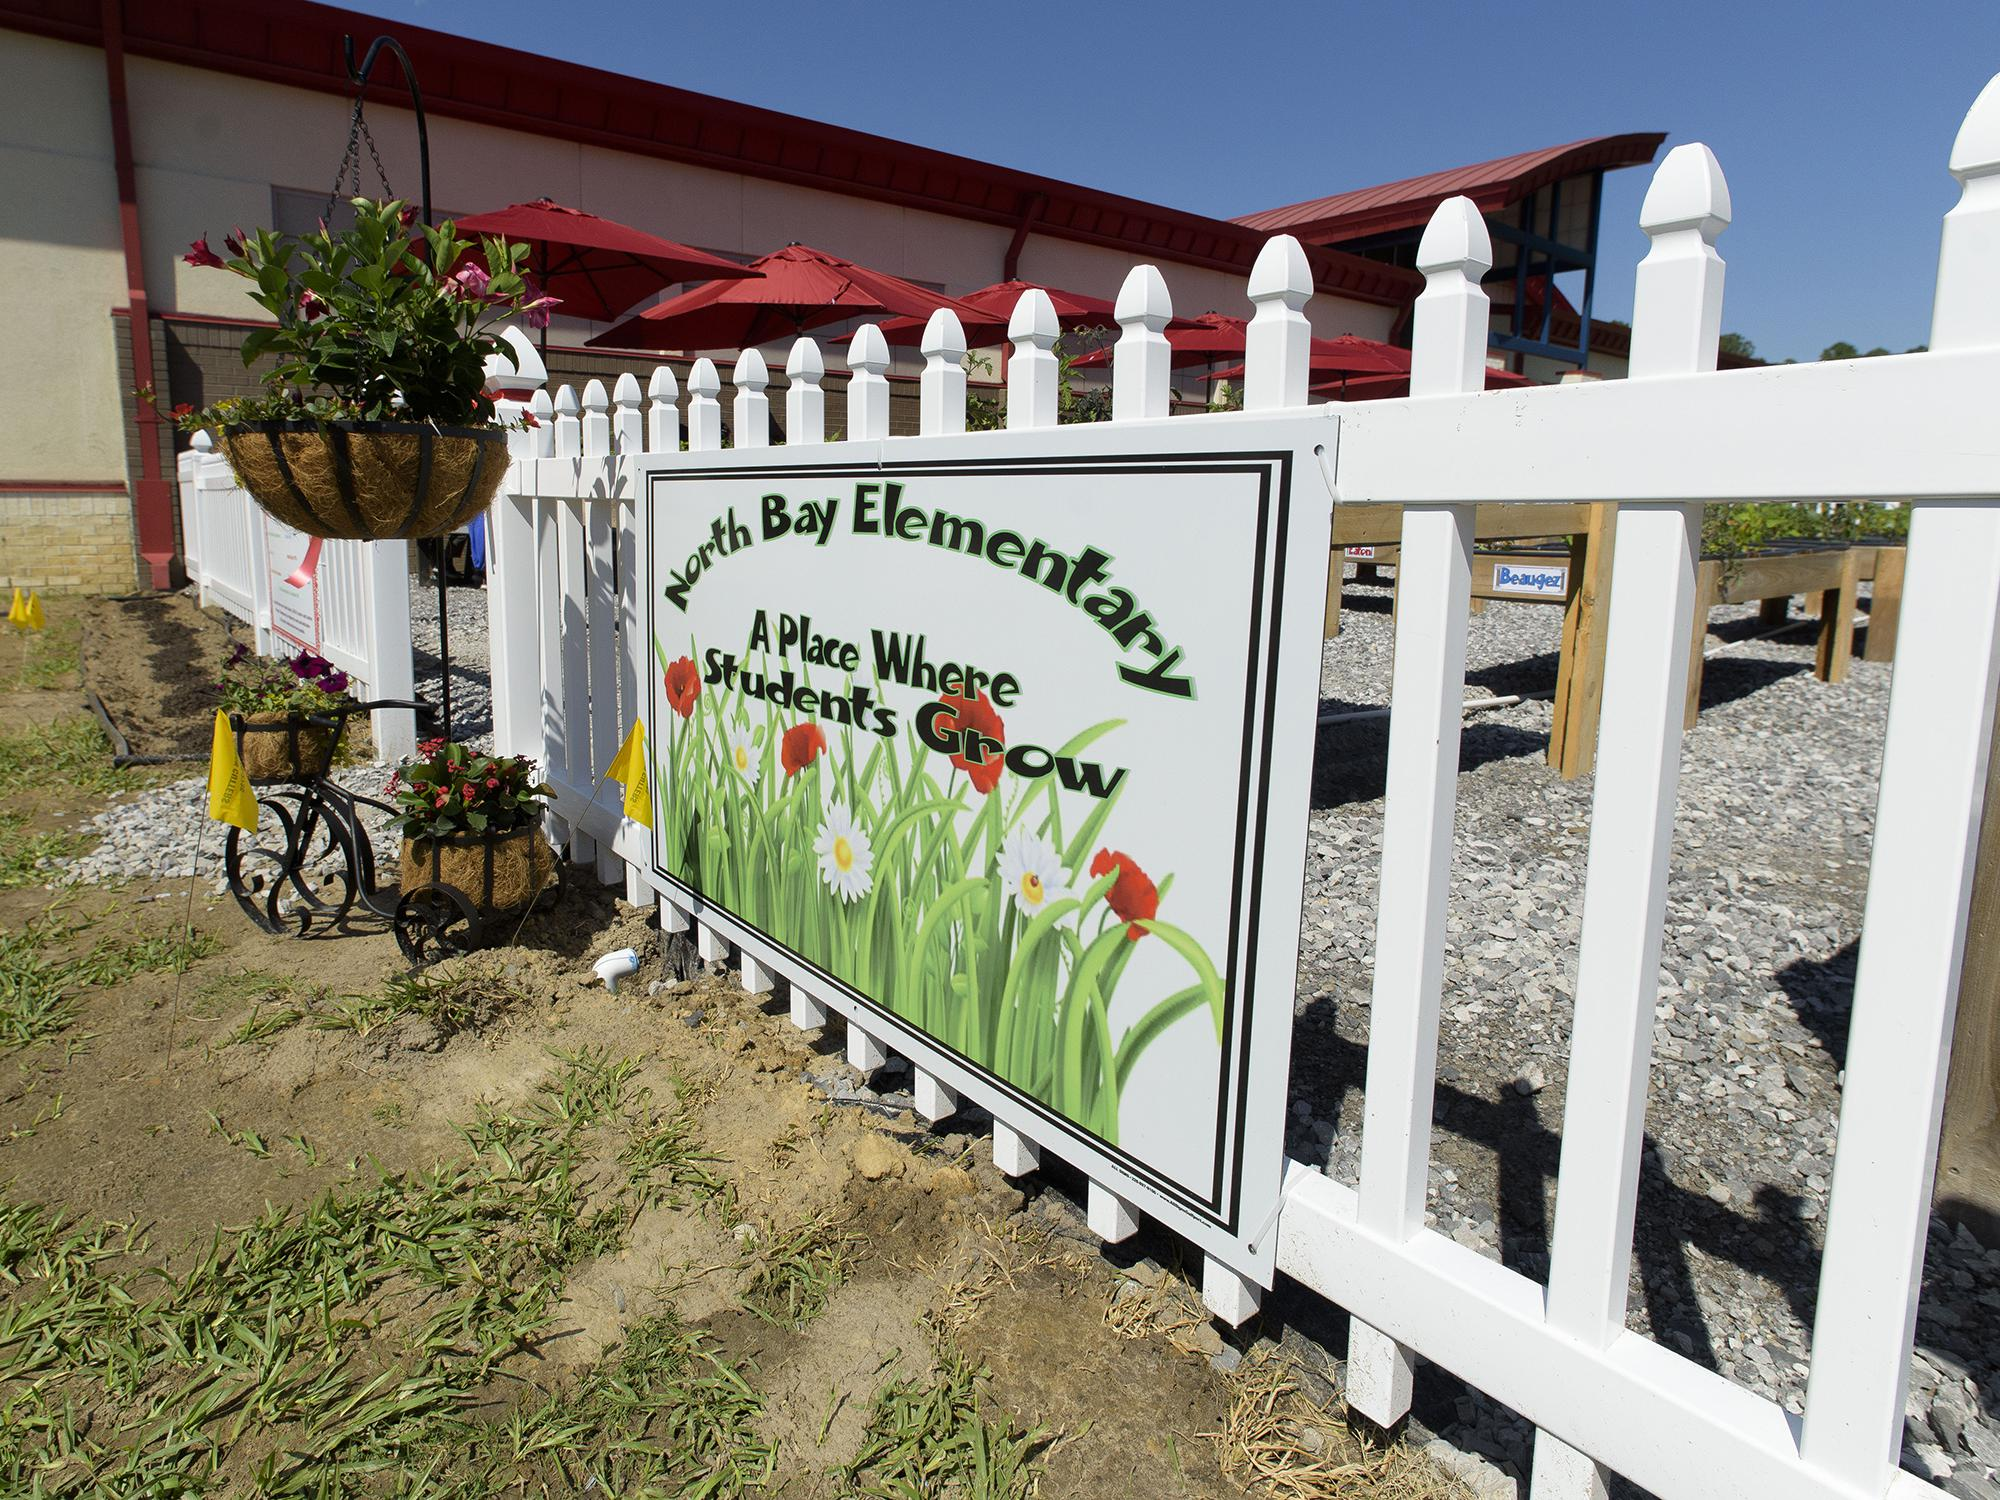 Colorful flowers are planted next to a sign at the entrance of the North Bay Elementary School garden.